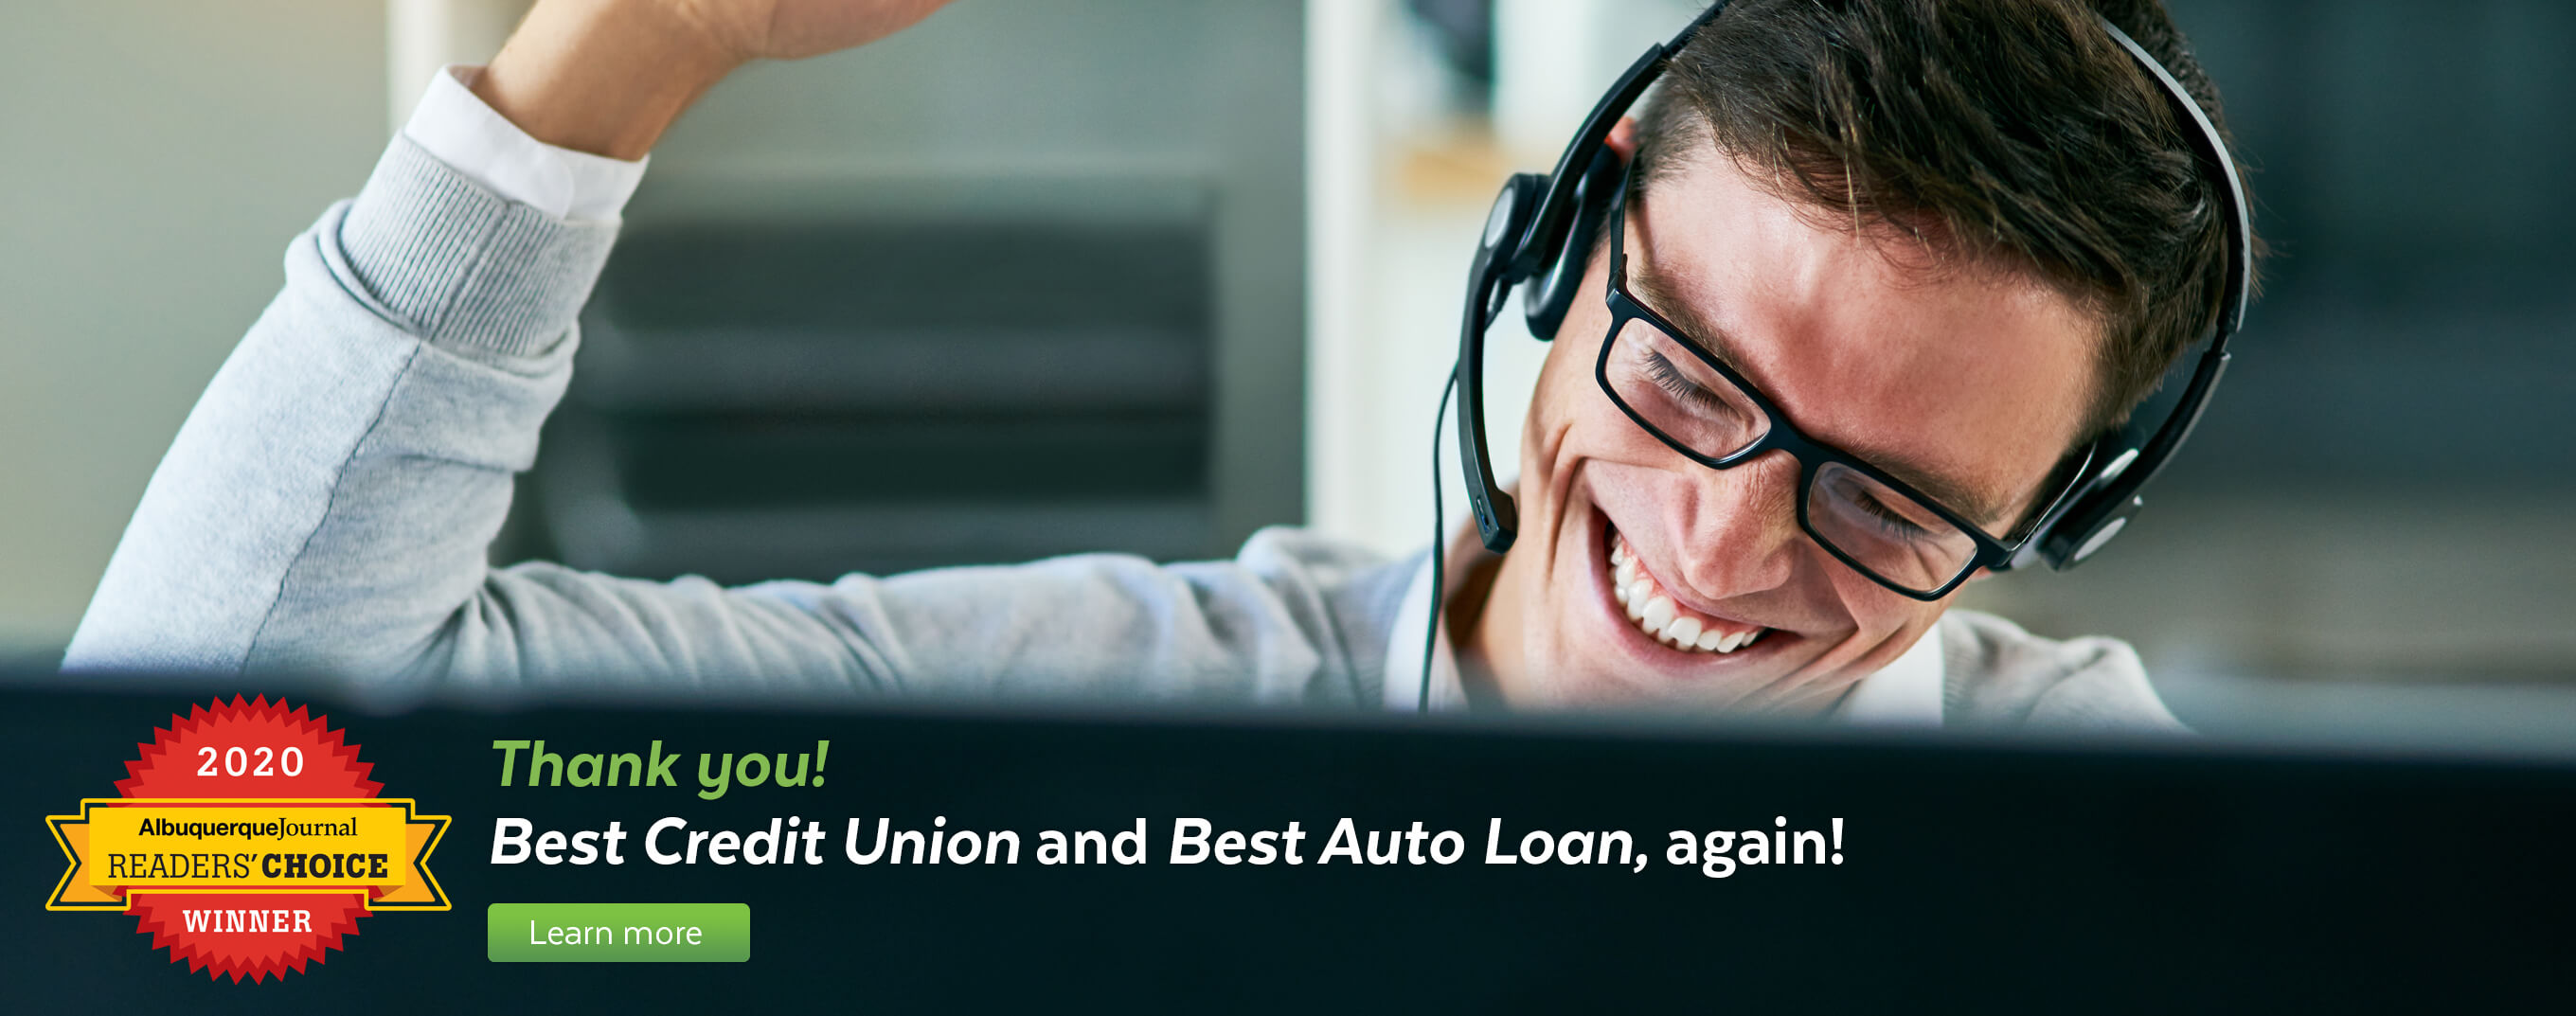 Thank you! Nusenda wins Best Credit Union and Best Auto Loan in the Albuquerque Journal Readers' Choice awards.